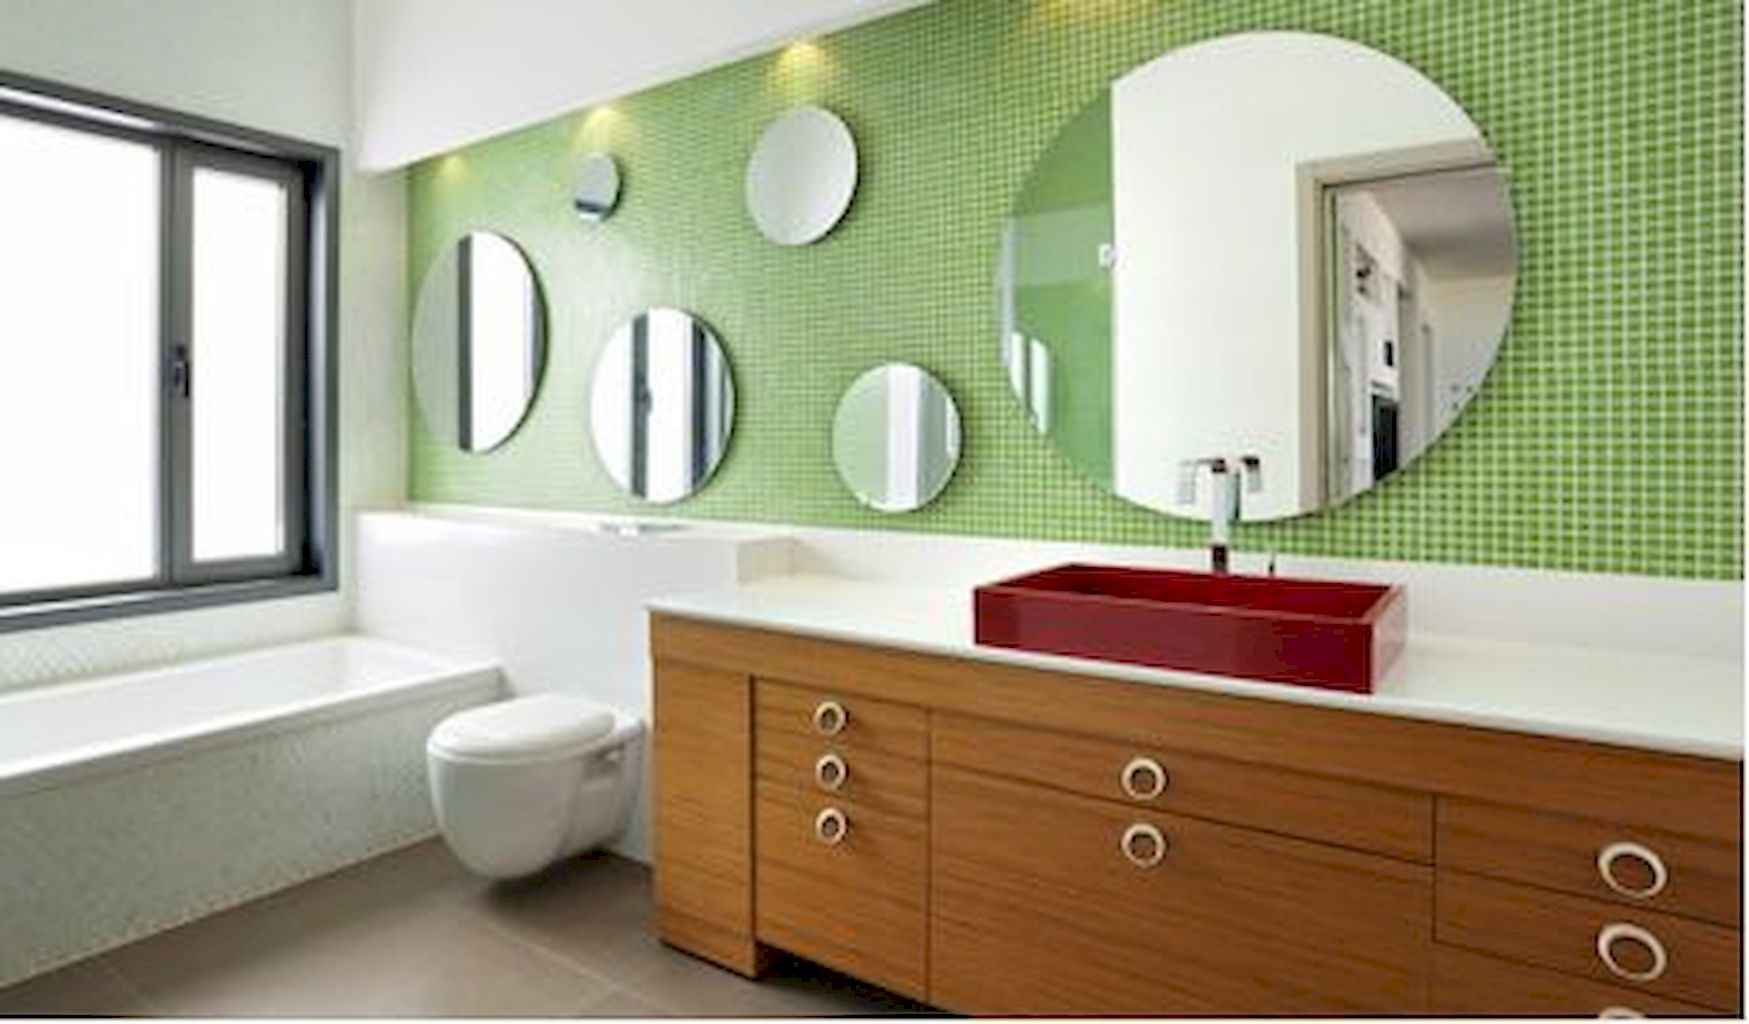 55 Cool and Relax Bathroom Decor Ideas (2)